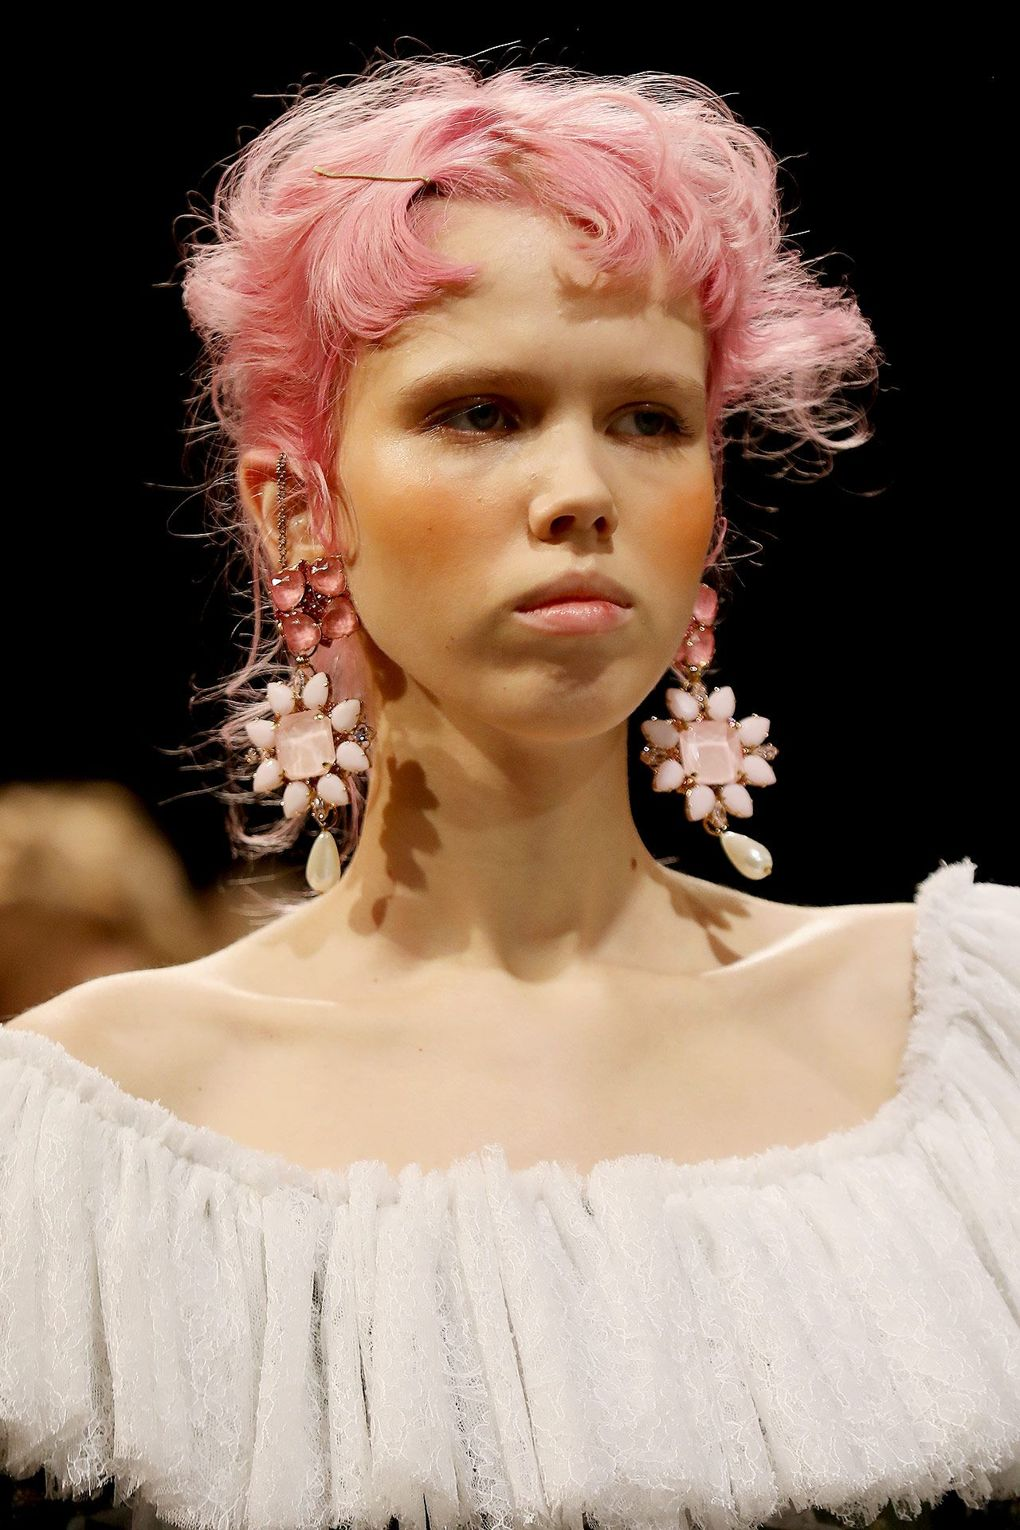 The City: London The Show: Mimi Wade The Look: Pink locks